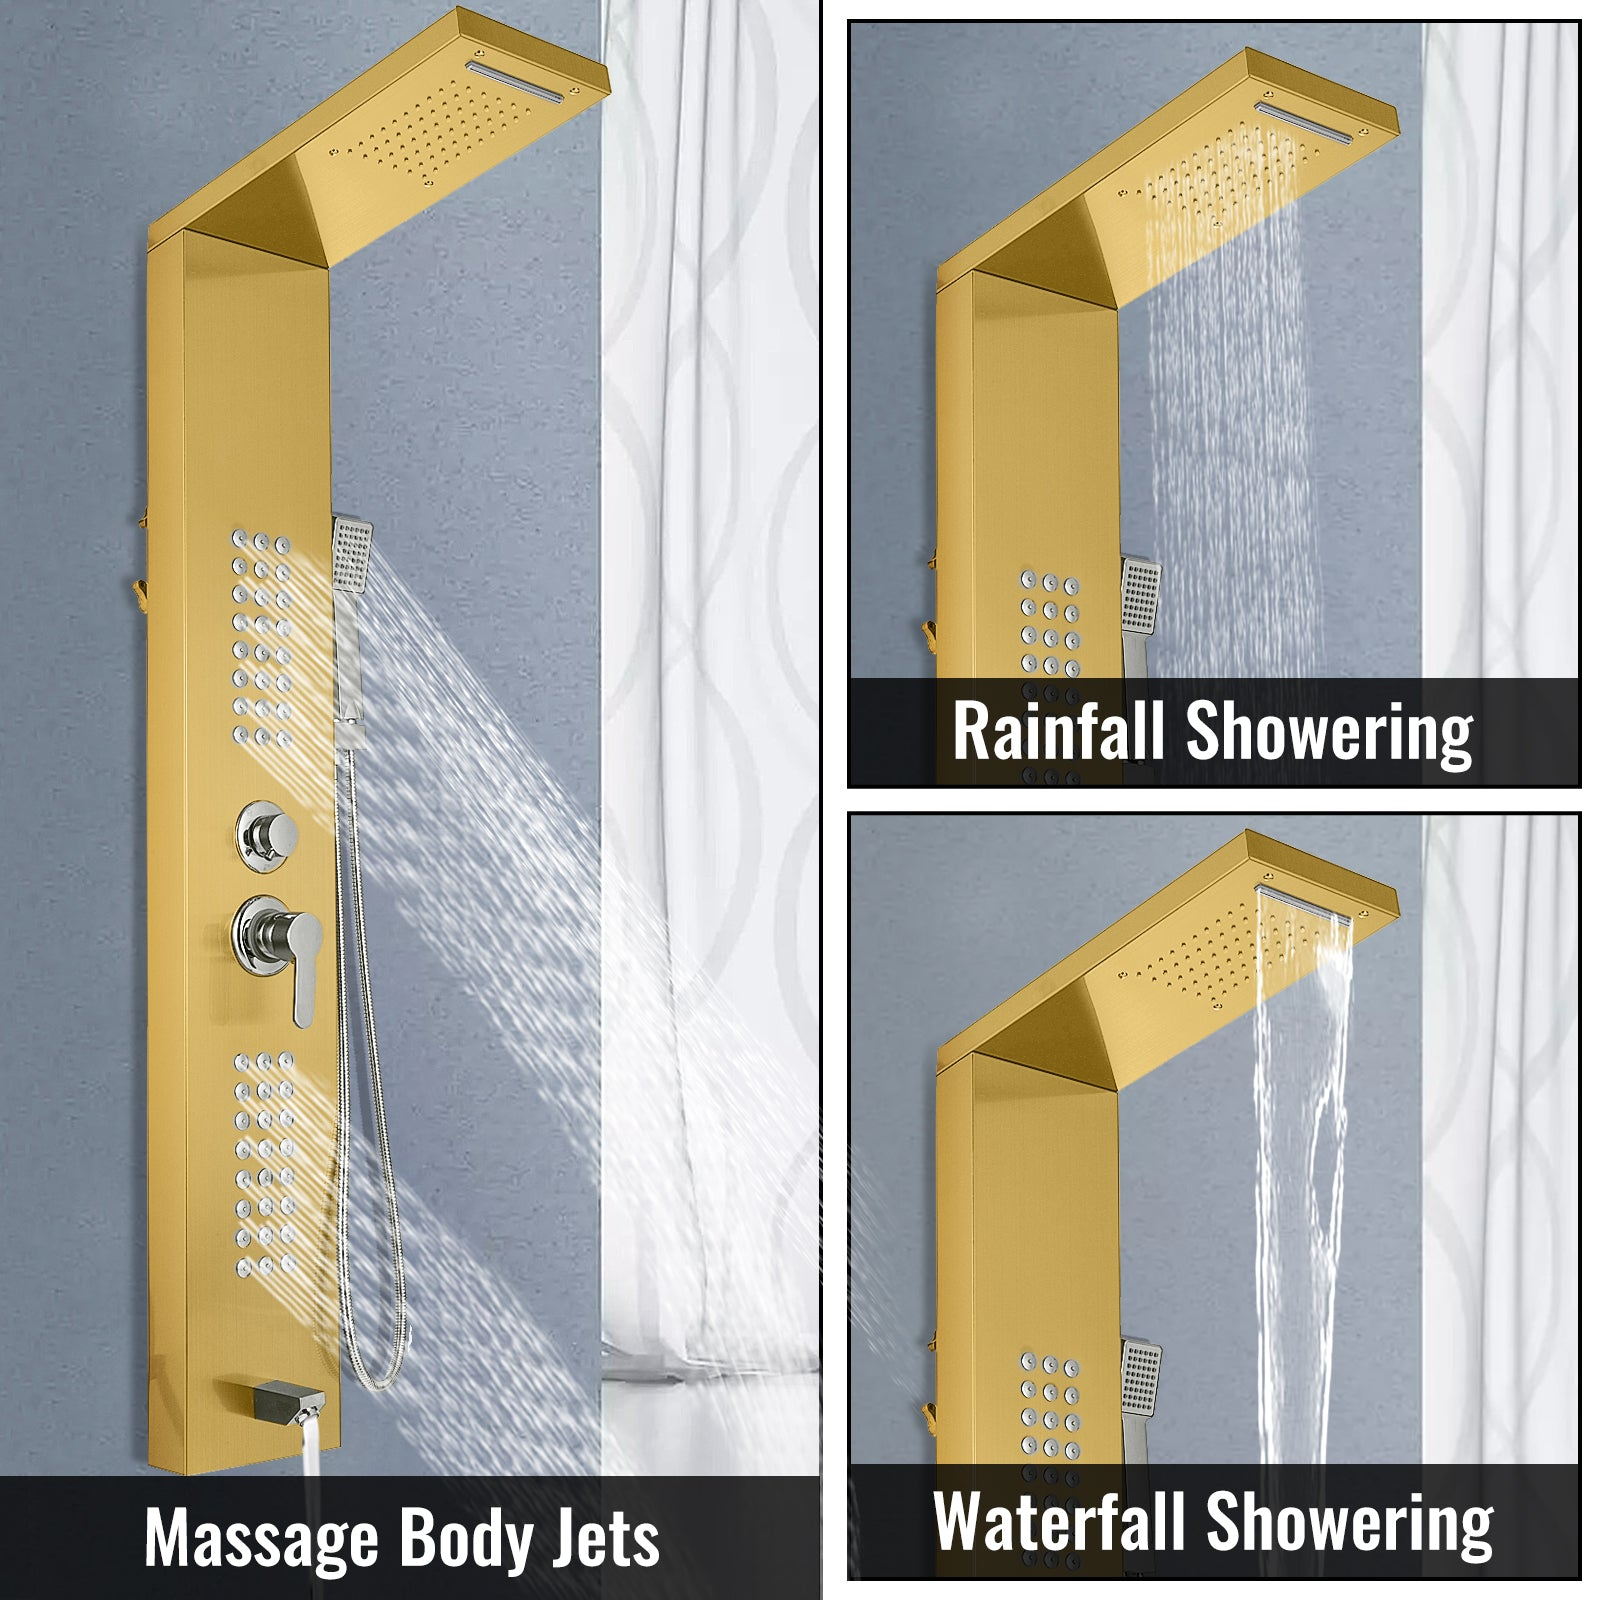 5 In 1 Shower Column Tower Panel With Twin Heads Tub Spout Elegant Waterfall